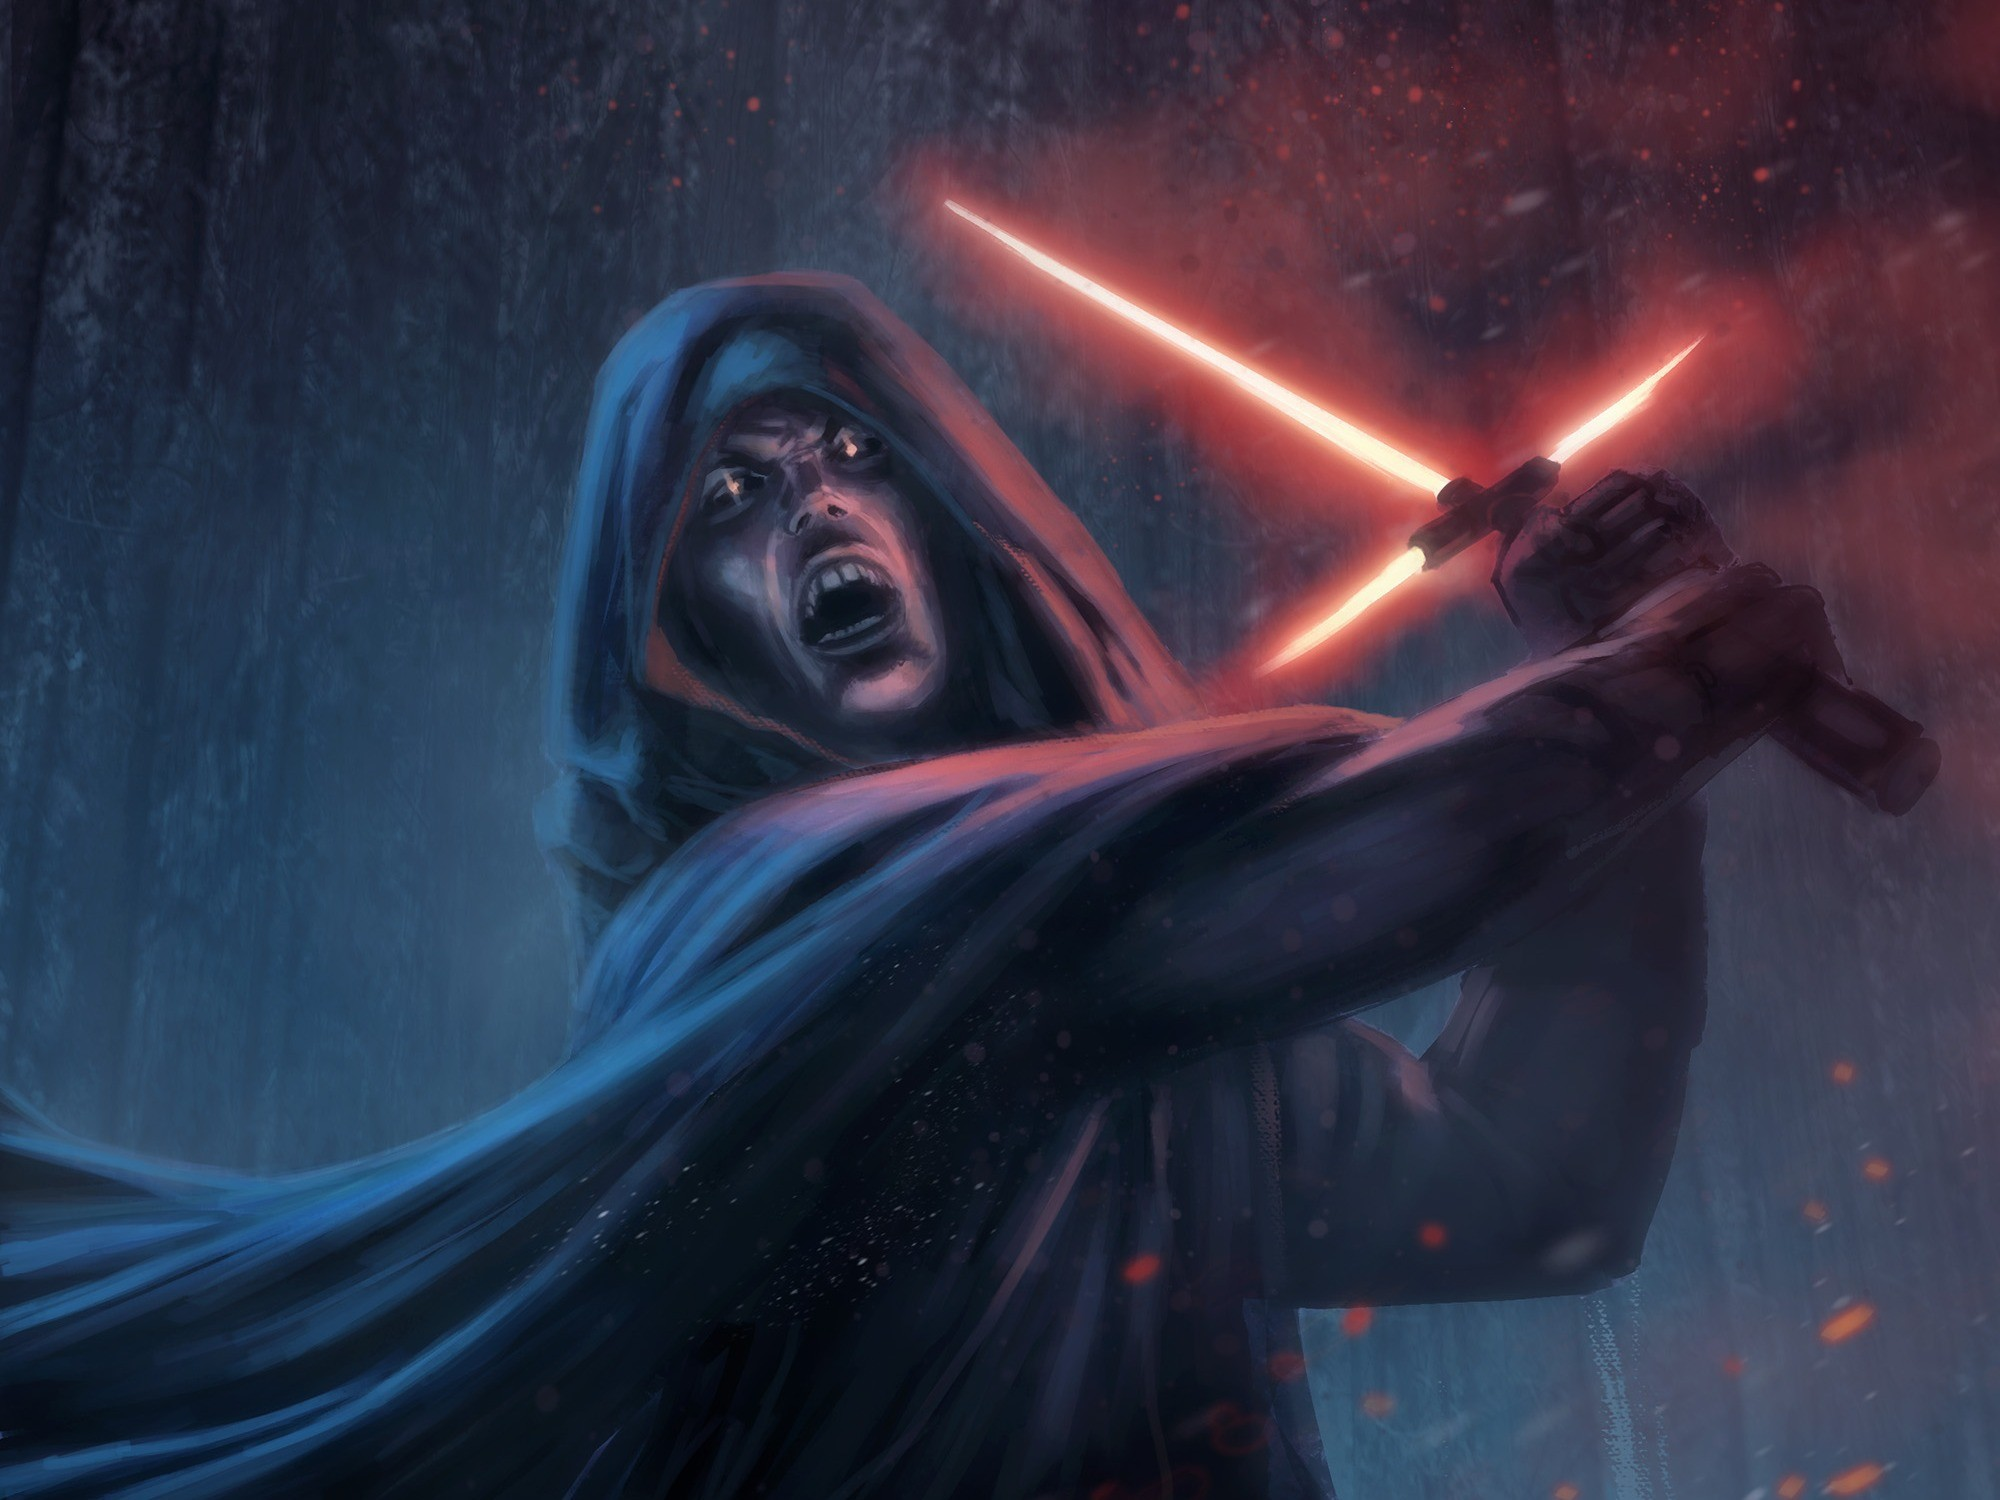 2000x1500  Wallpaper star wars episode vii - the force awakens, sith,  lightsaber